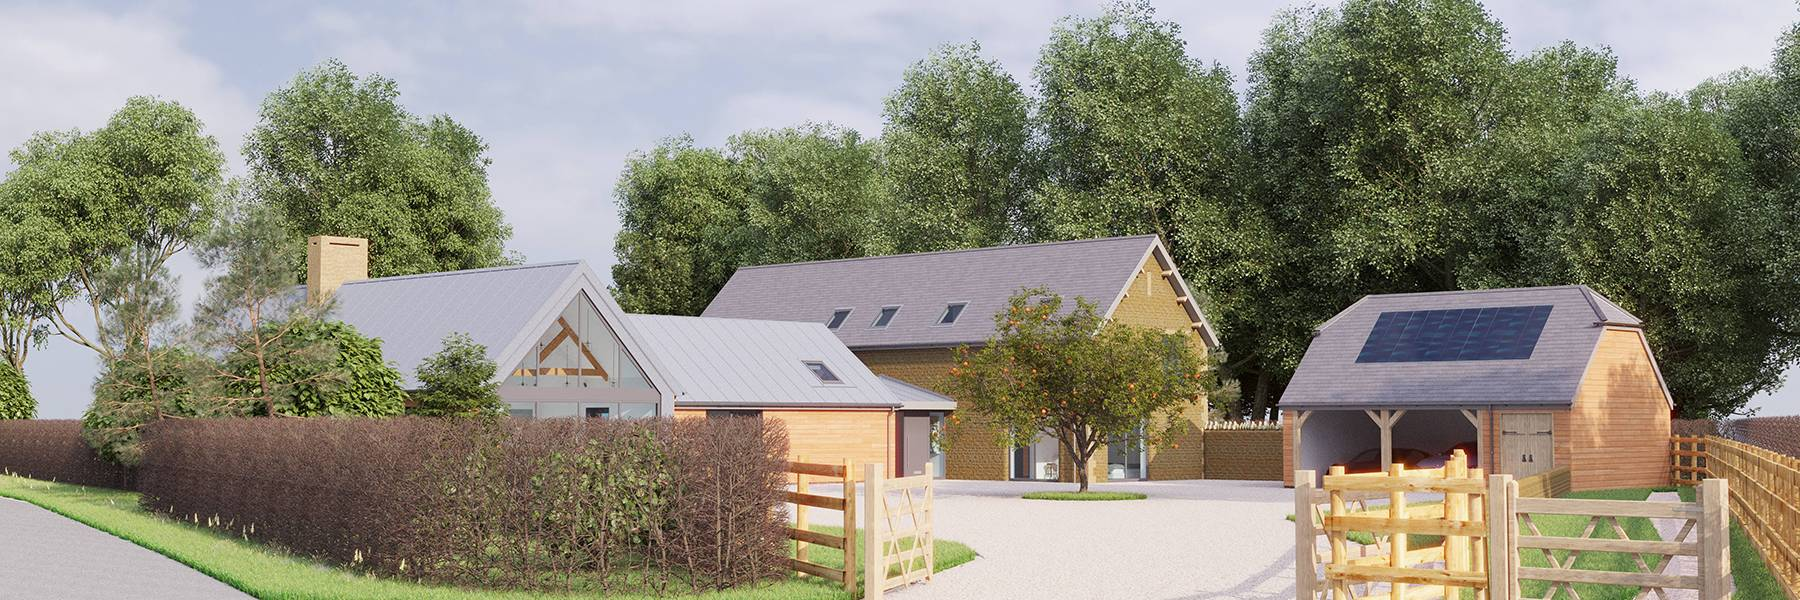 Bespoke new builds and conversions